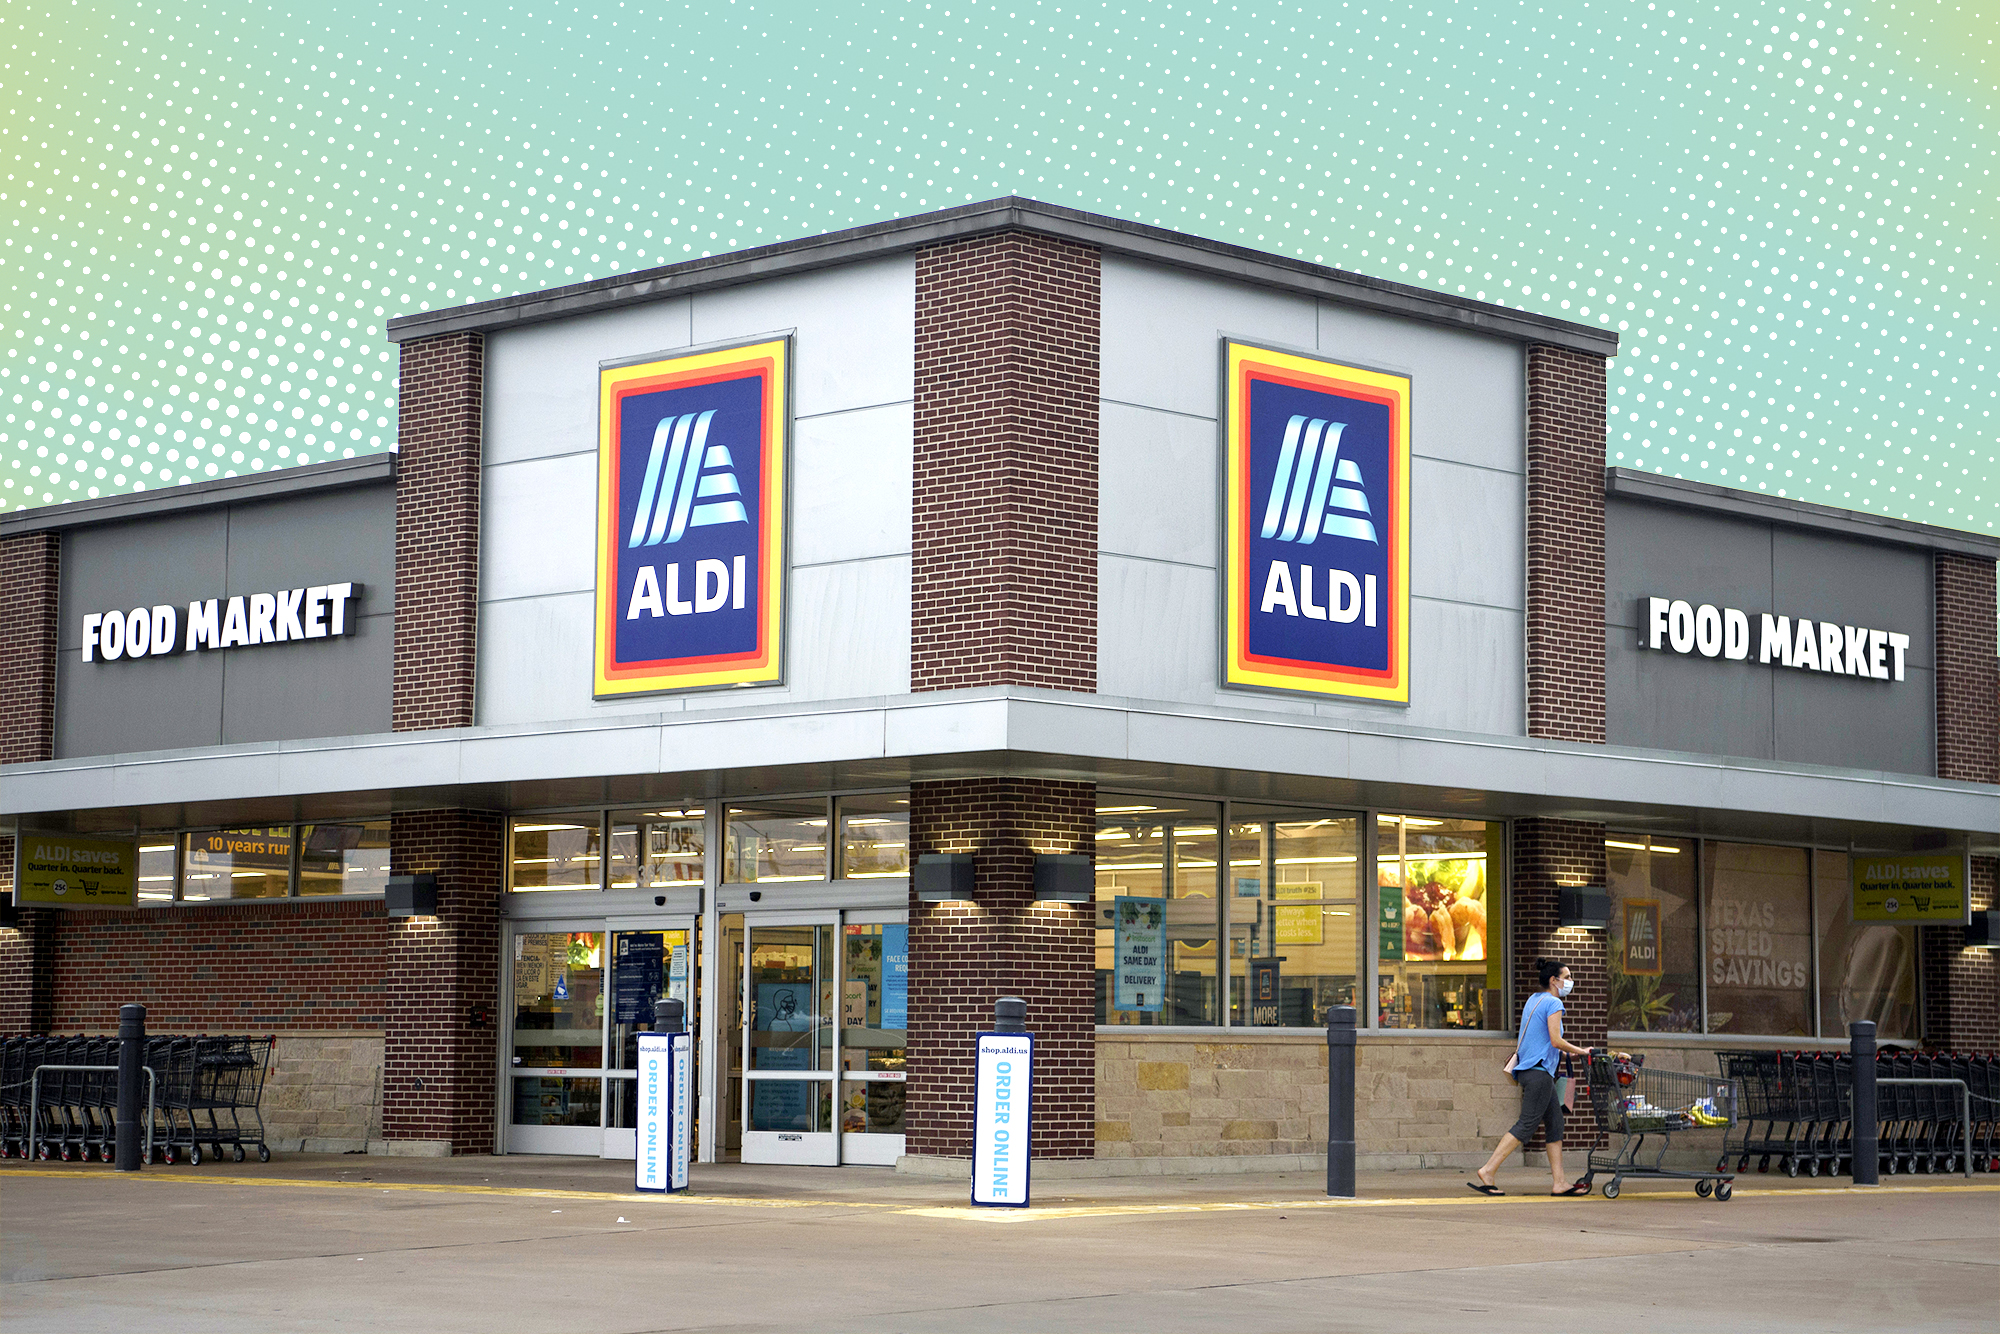 Aldi store front with a designed treatment in the background